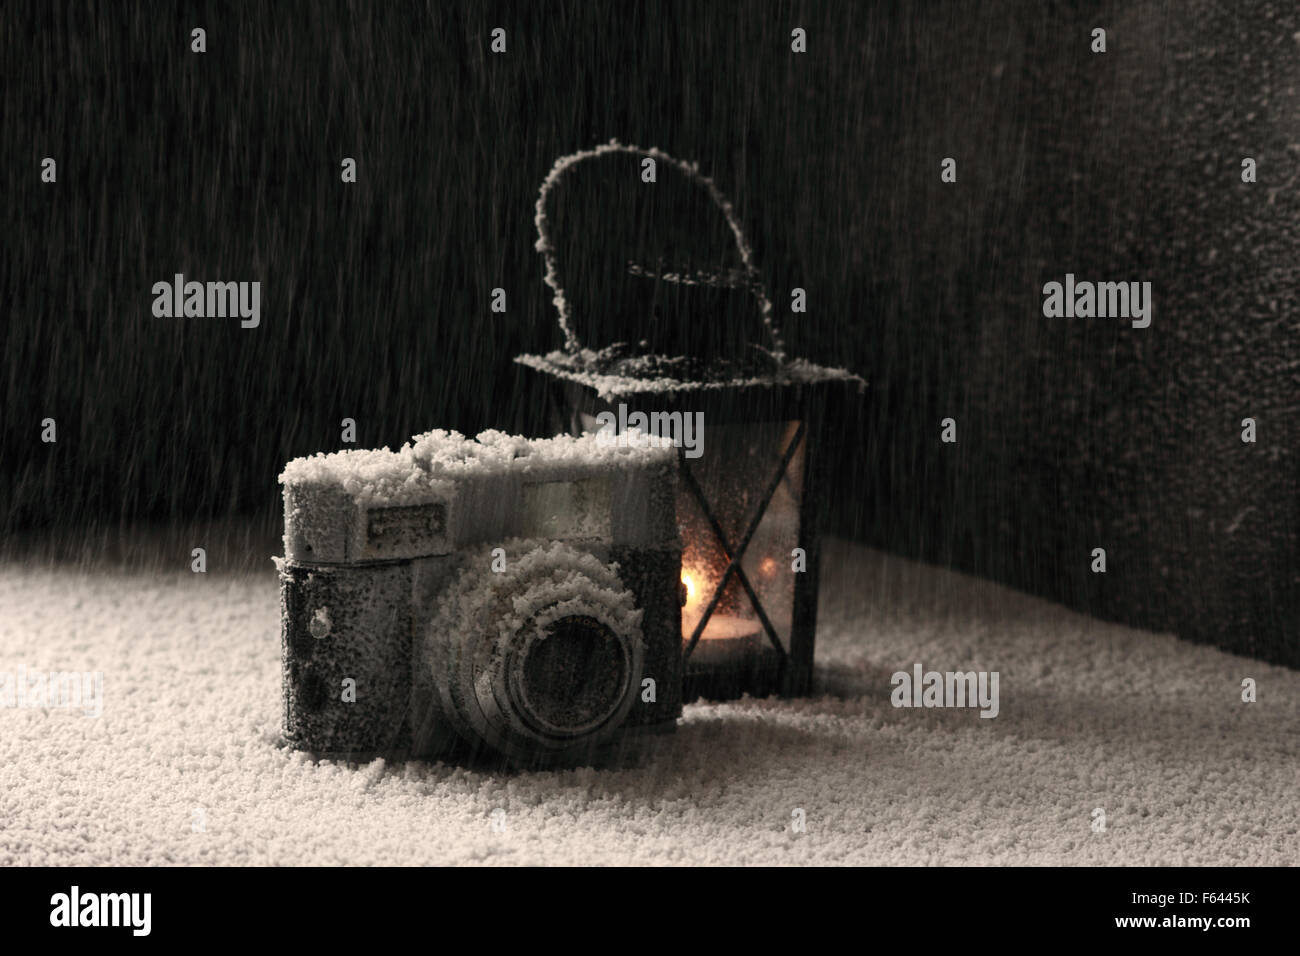 Old camera in the snowing - Stock Image